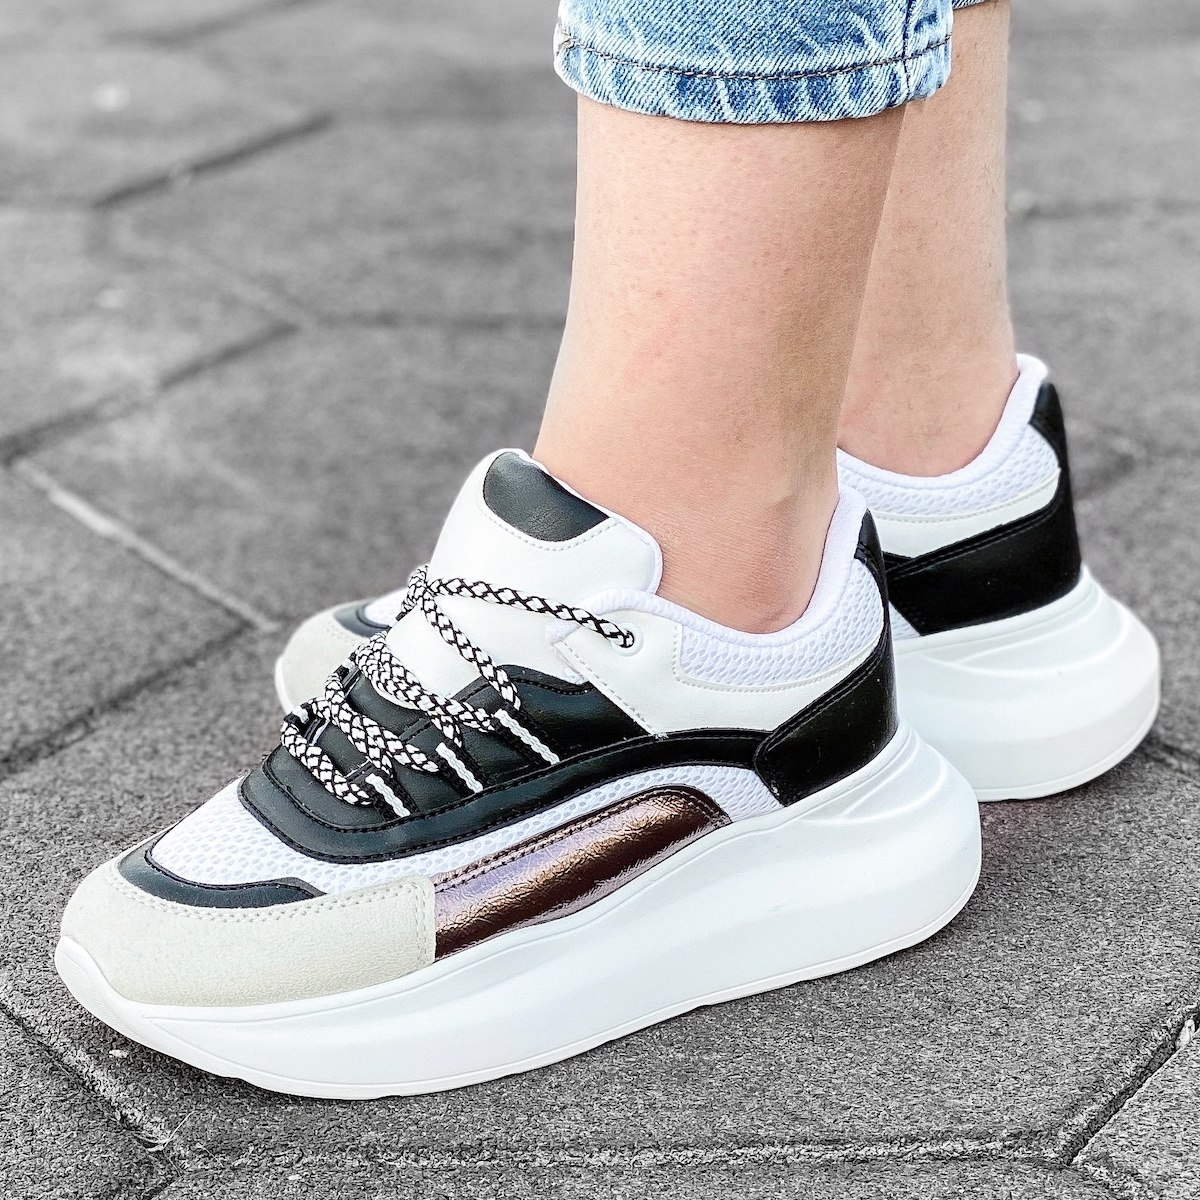 Women's Patchwork High Sole Sneakers